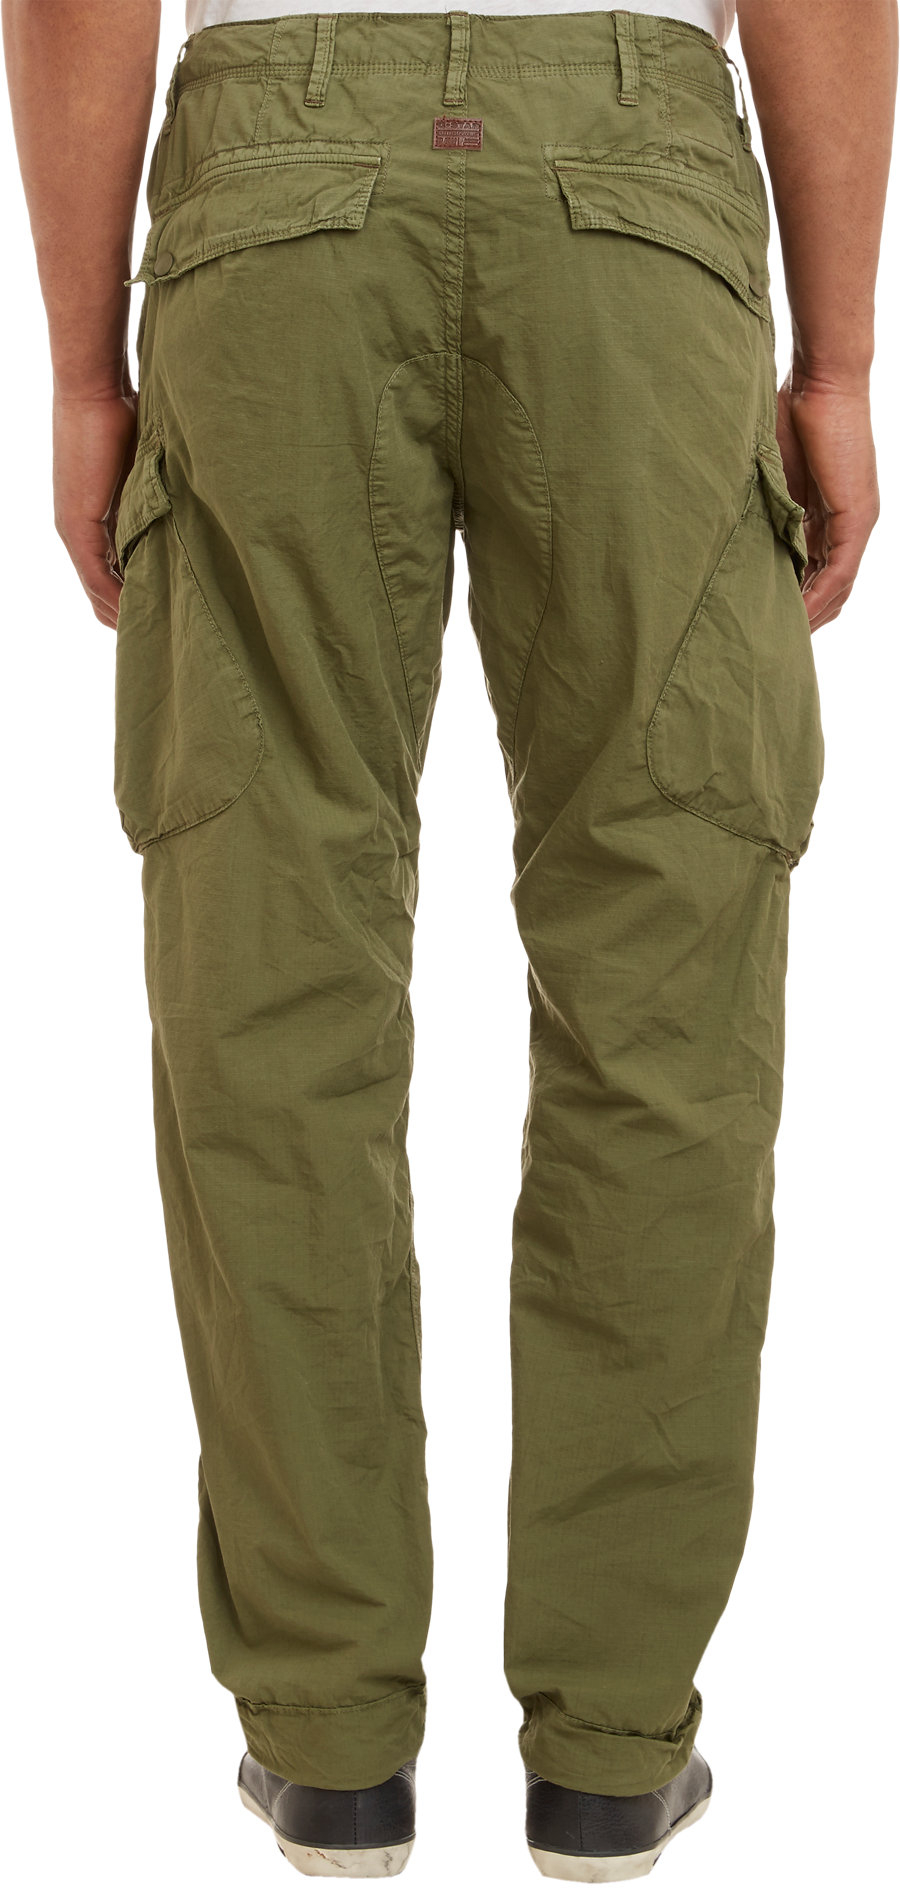 Lyst G Star Raw Rovic Tapered Cargo Pants Olive In Green